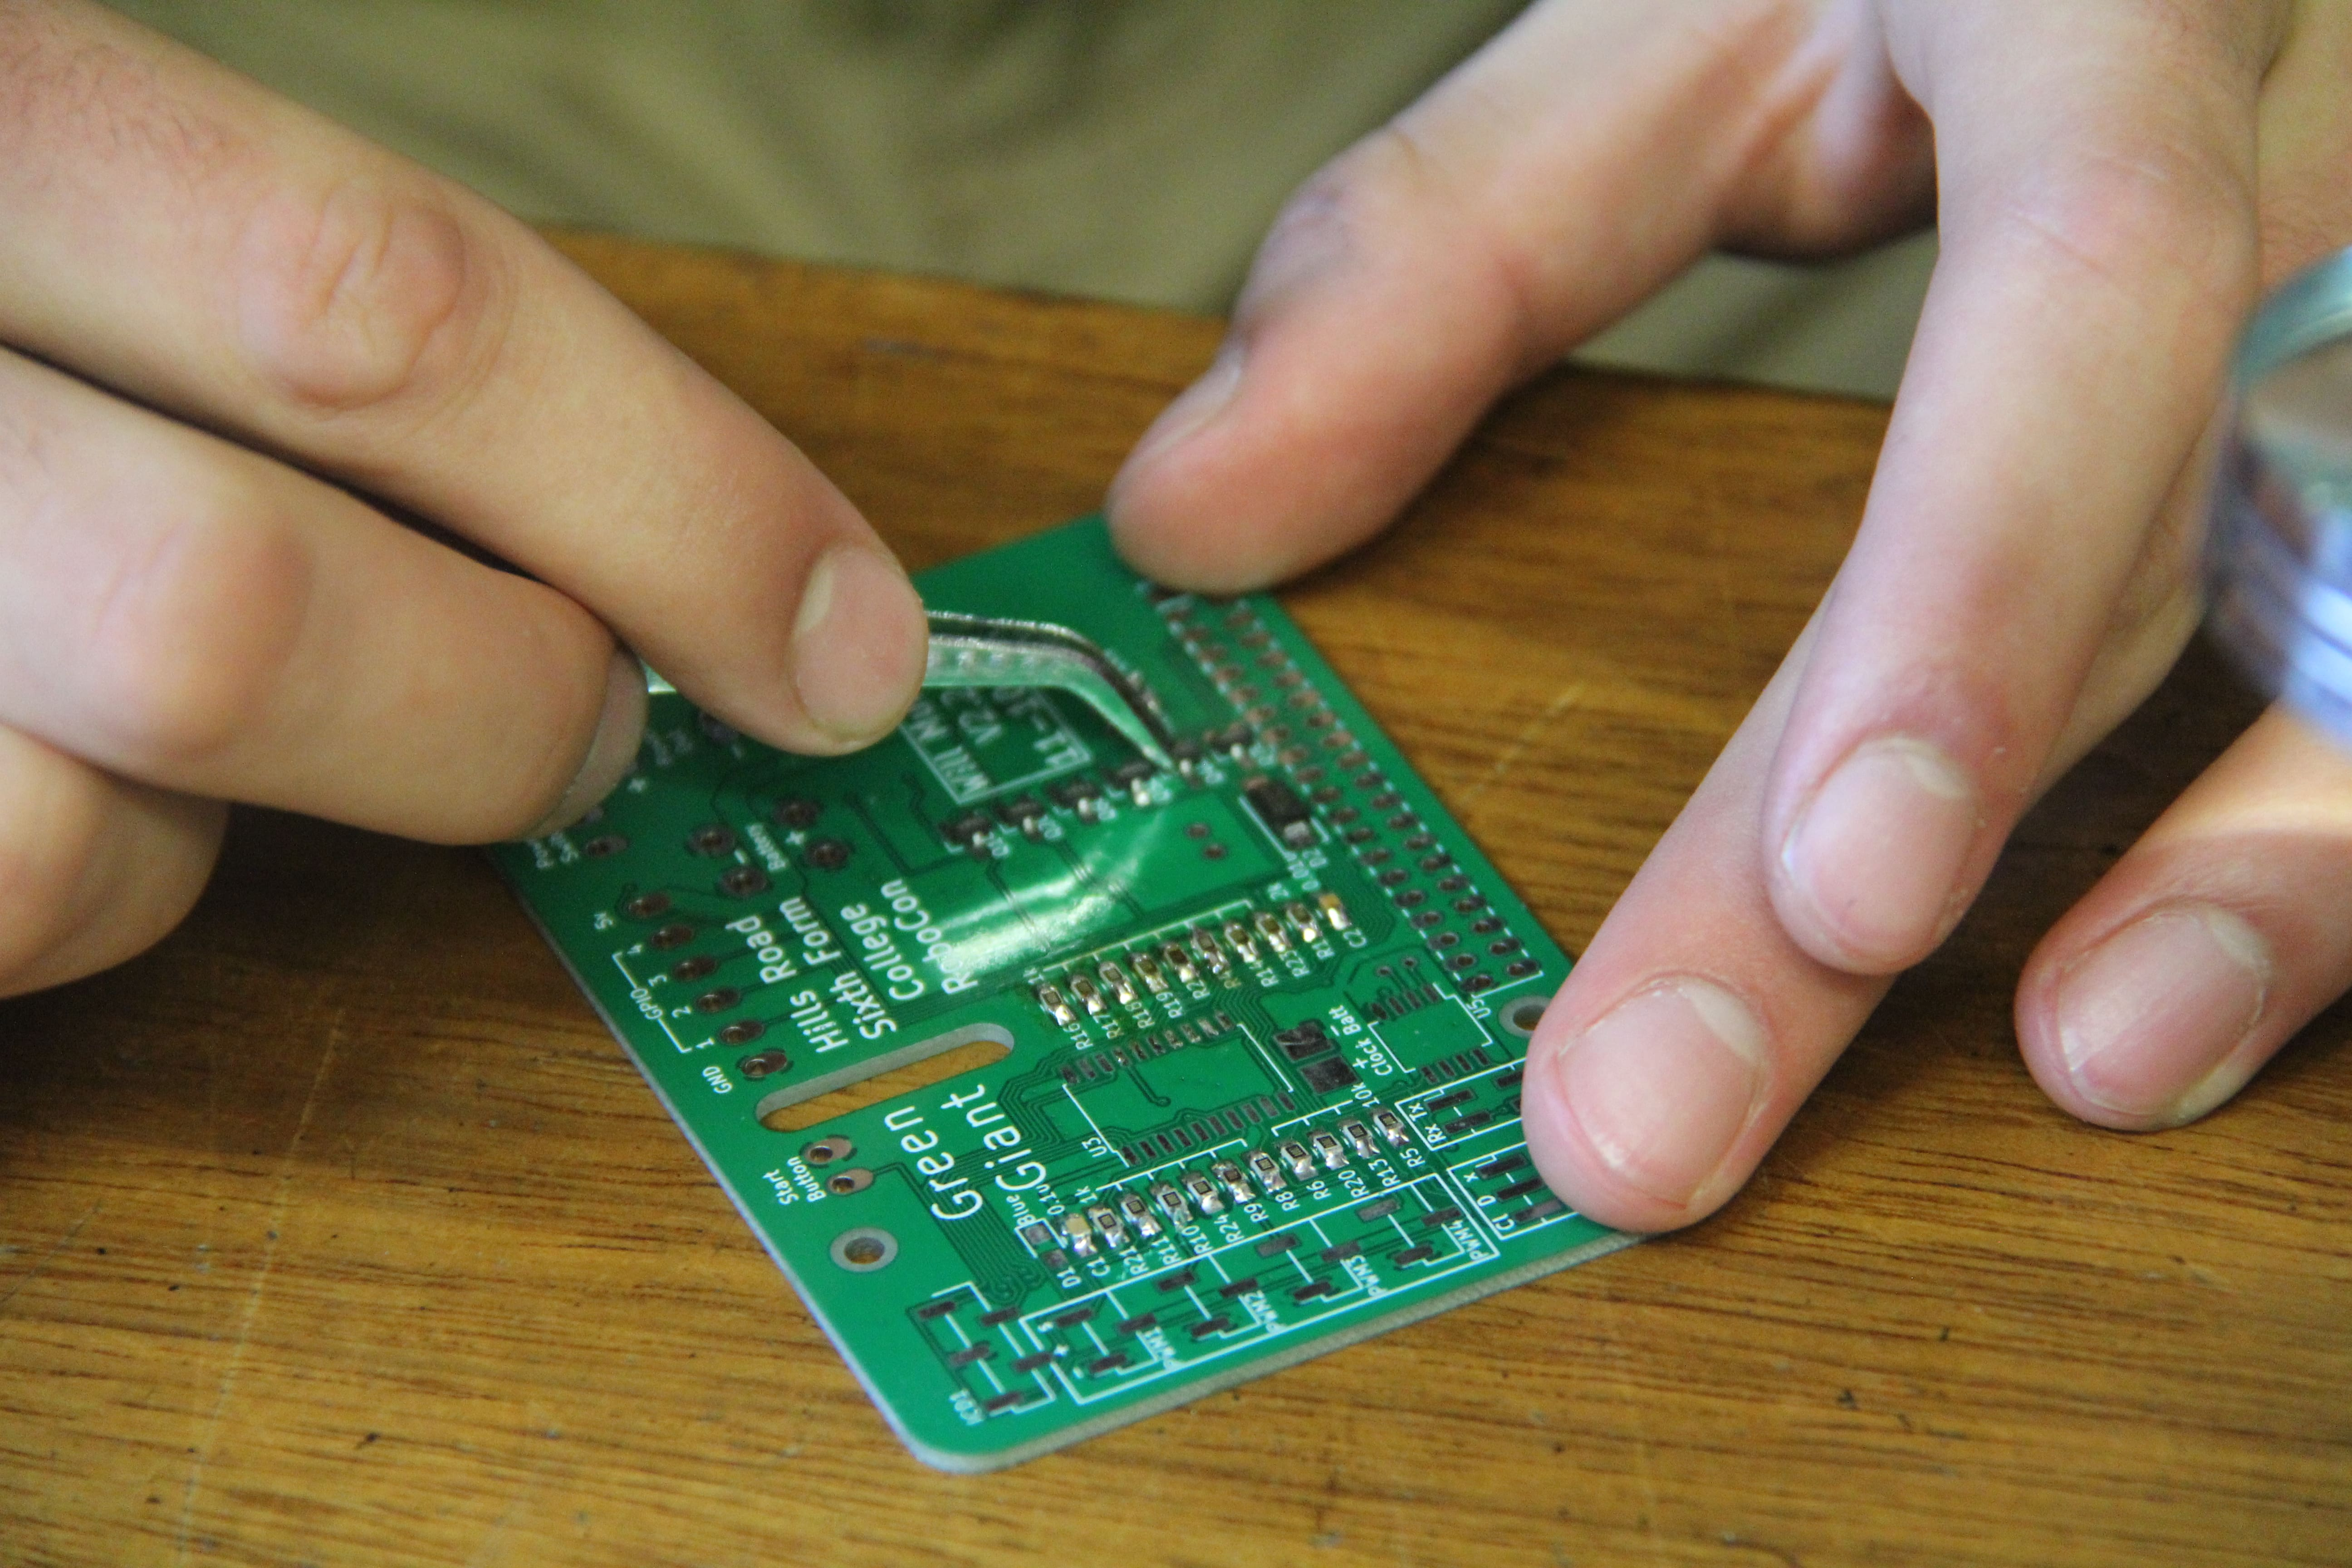 Soldering components to the board